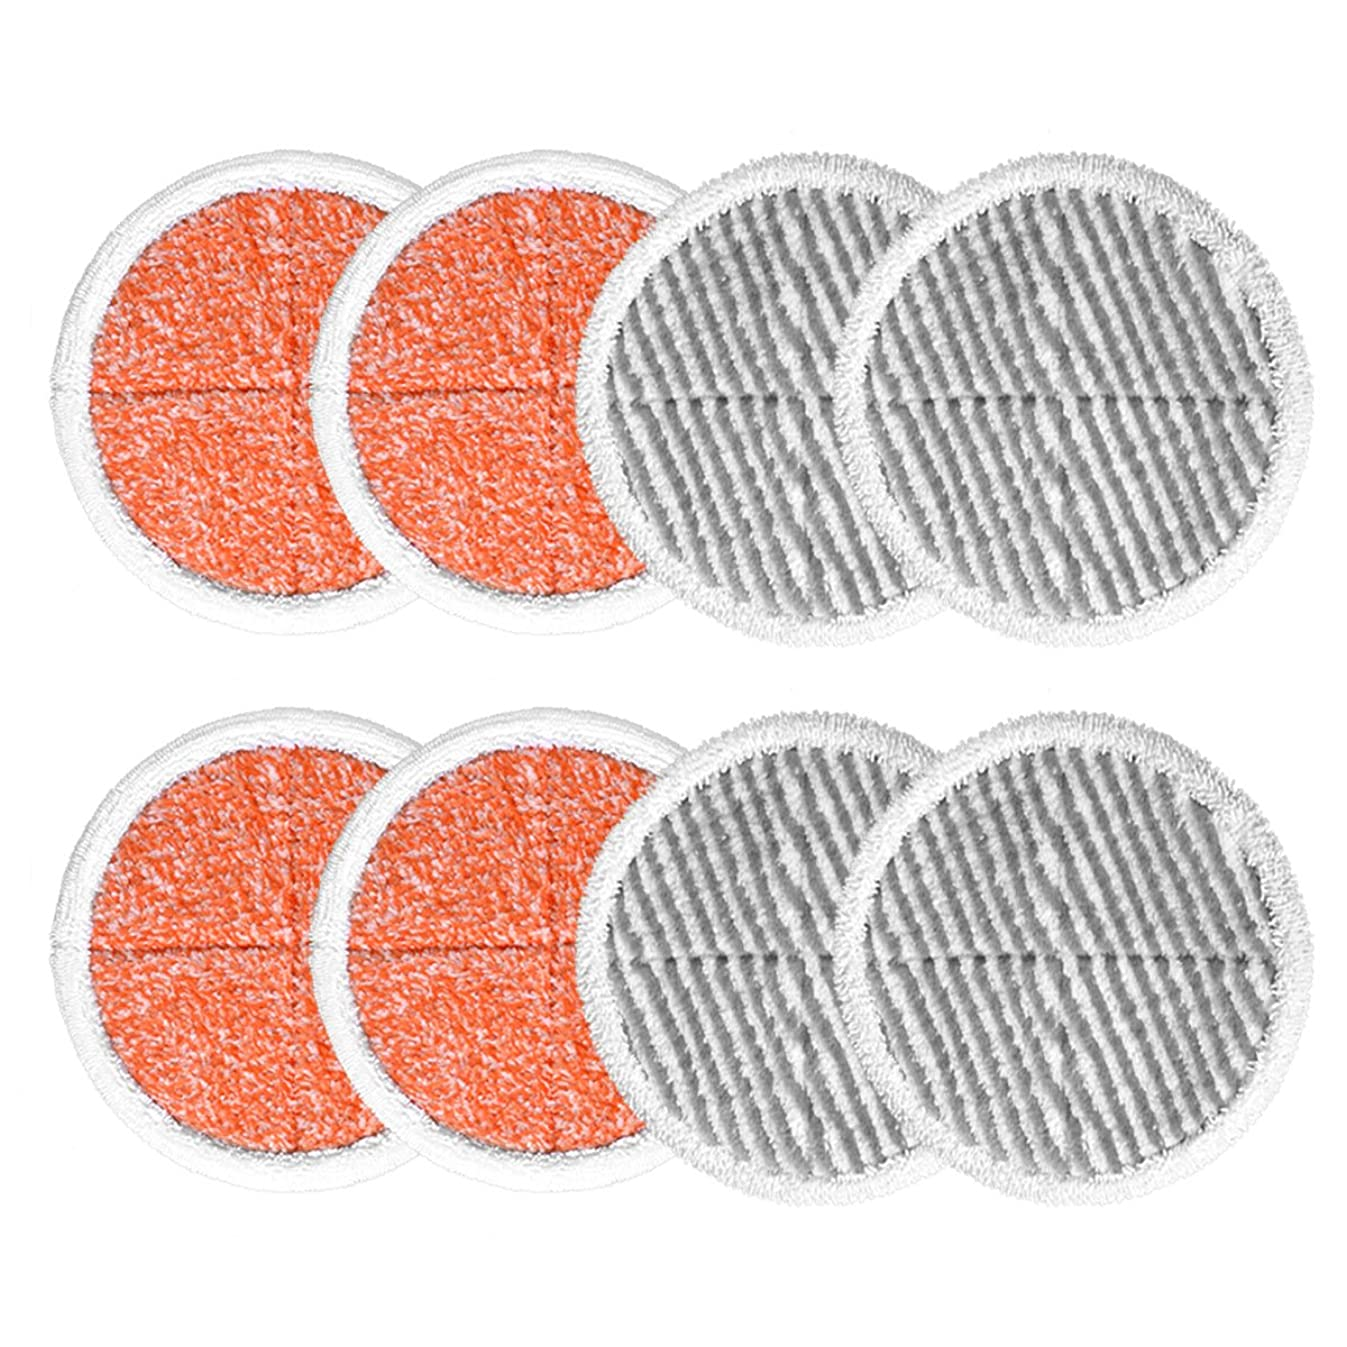 KEEPOW 8 Pack Spin Mop Pads Replacement for Bissell Spinwave 2124, 2039, 2037 Series Powered Hard Floor Mop